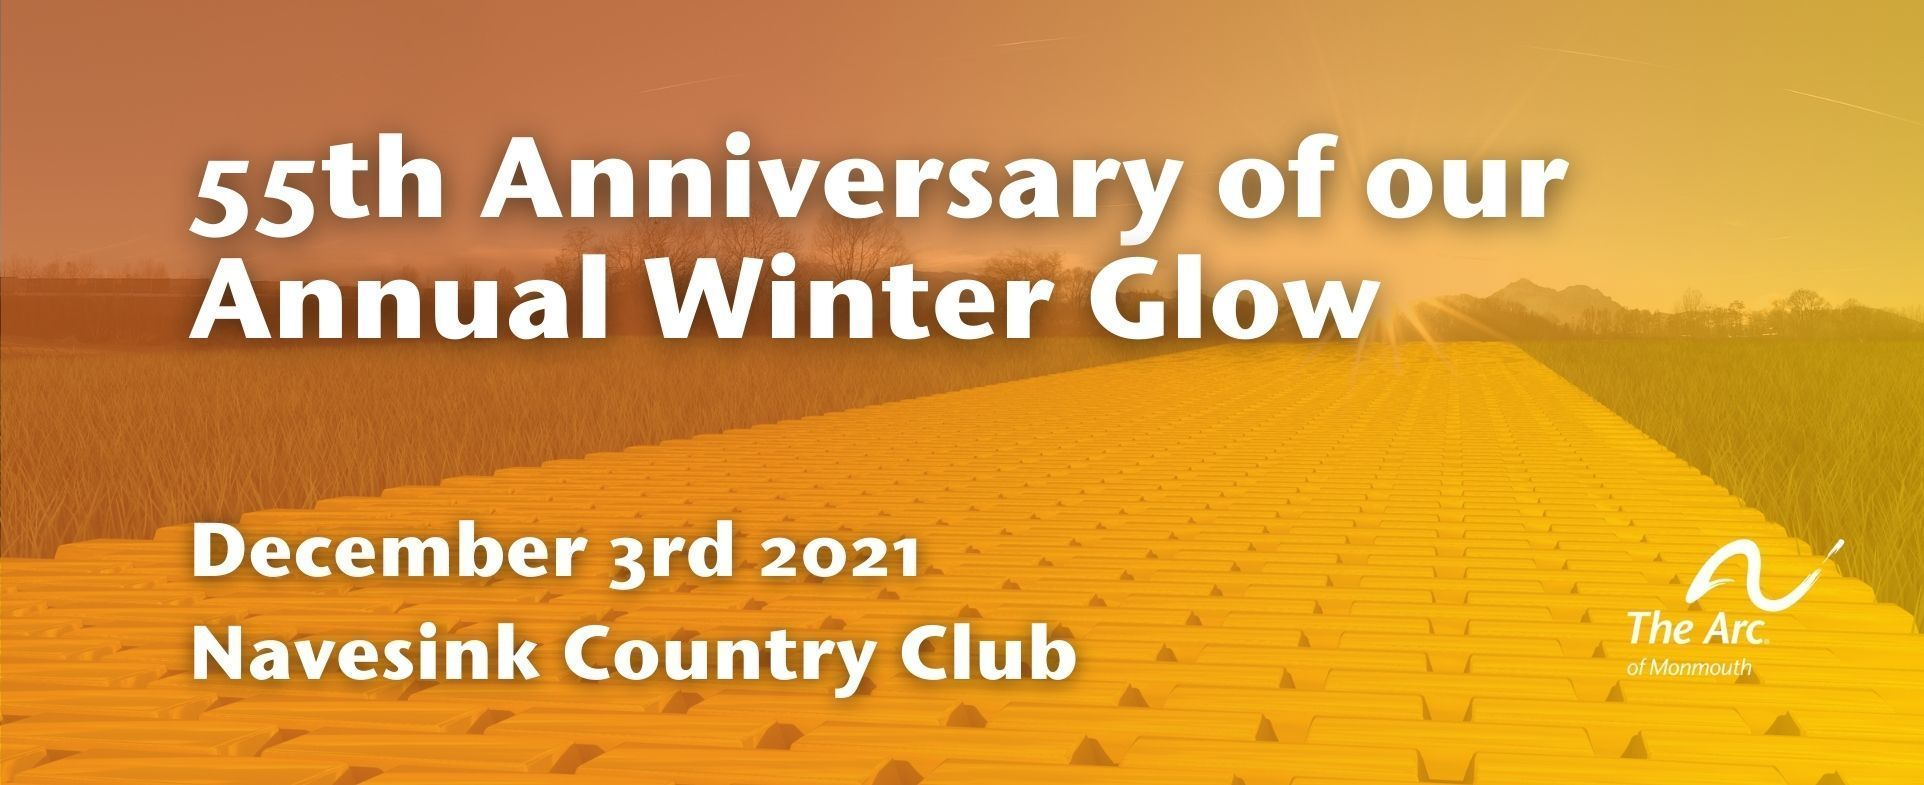 The Arc of Monmouth 2021 Winter Glow banner